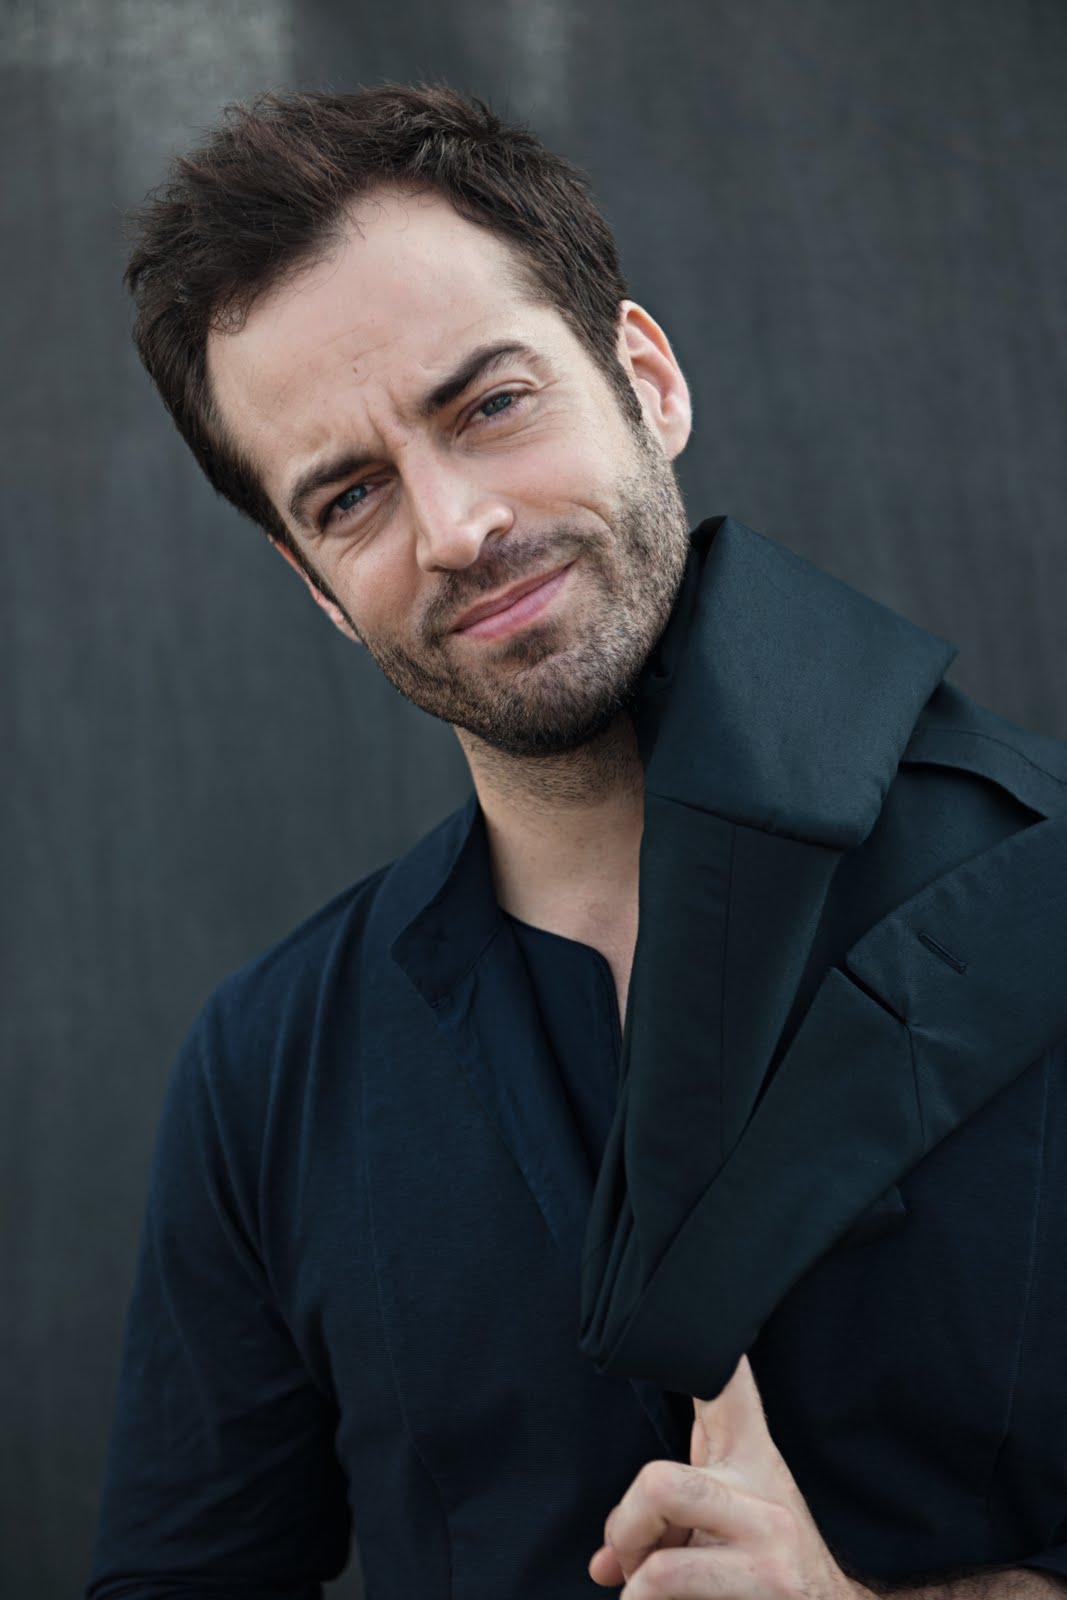 Benjamin Millepied - Alchetron, The Free Social Encyclopedia